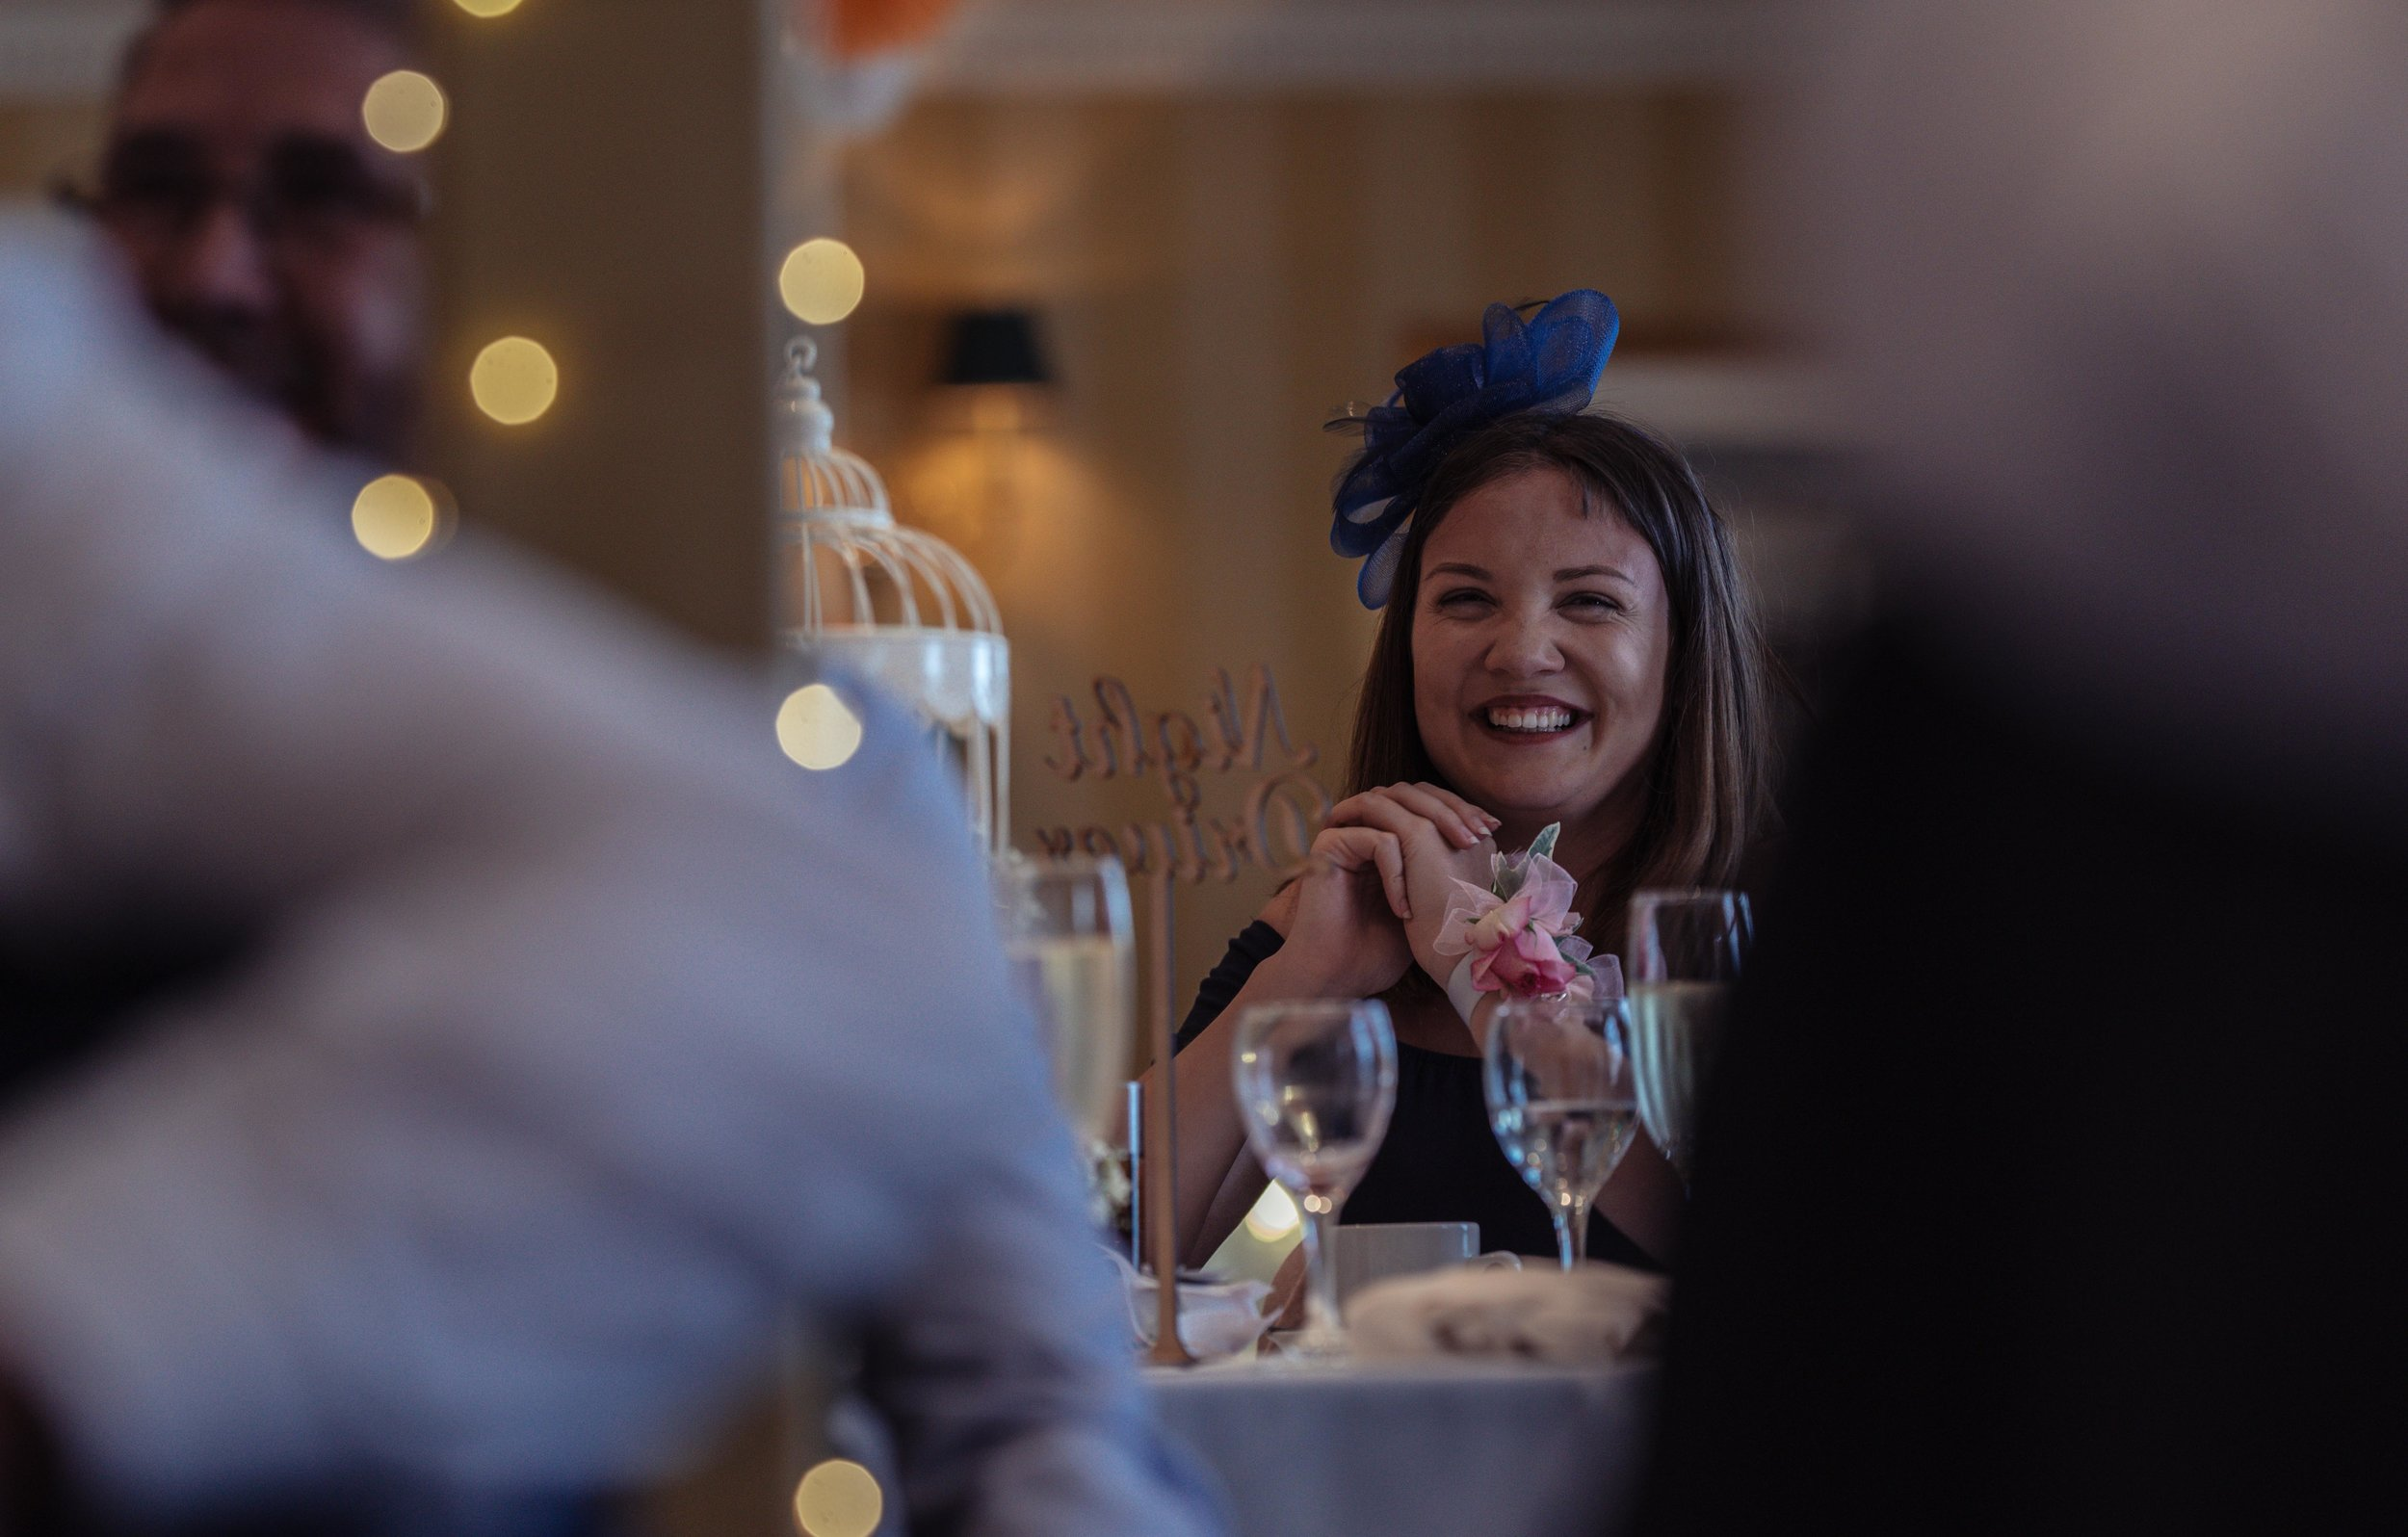 A wedding guest laughs at a joke during the speeches